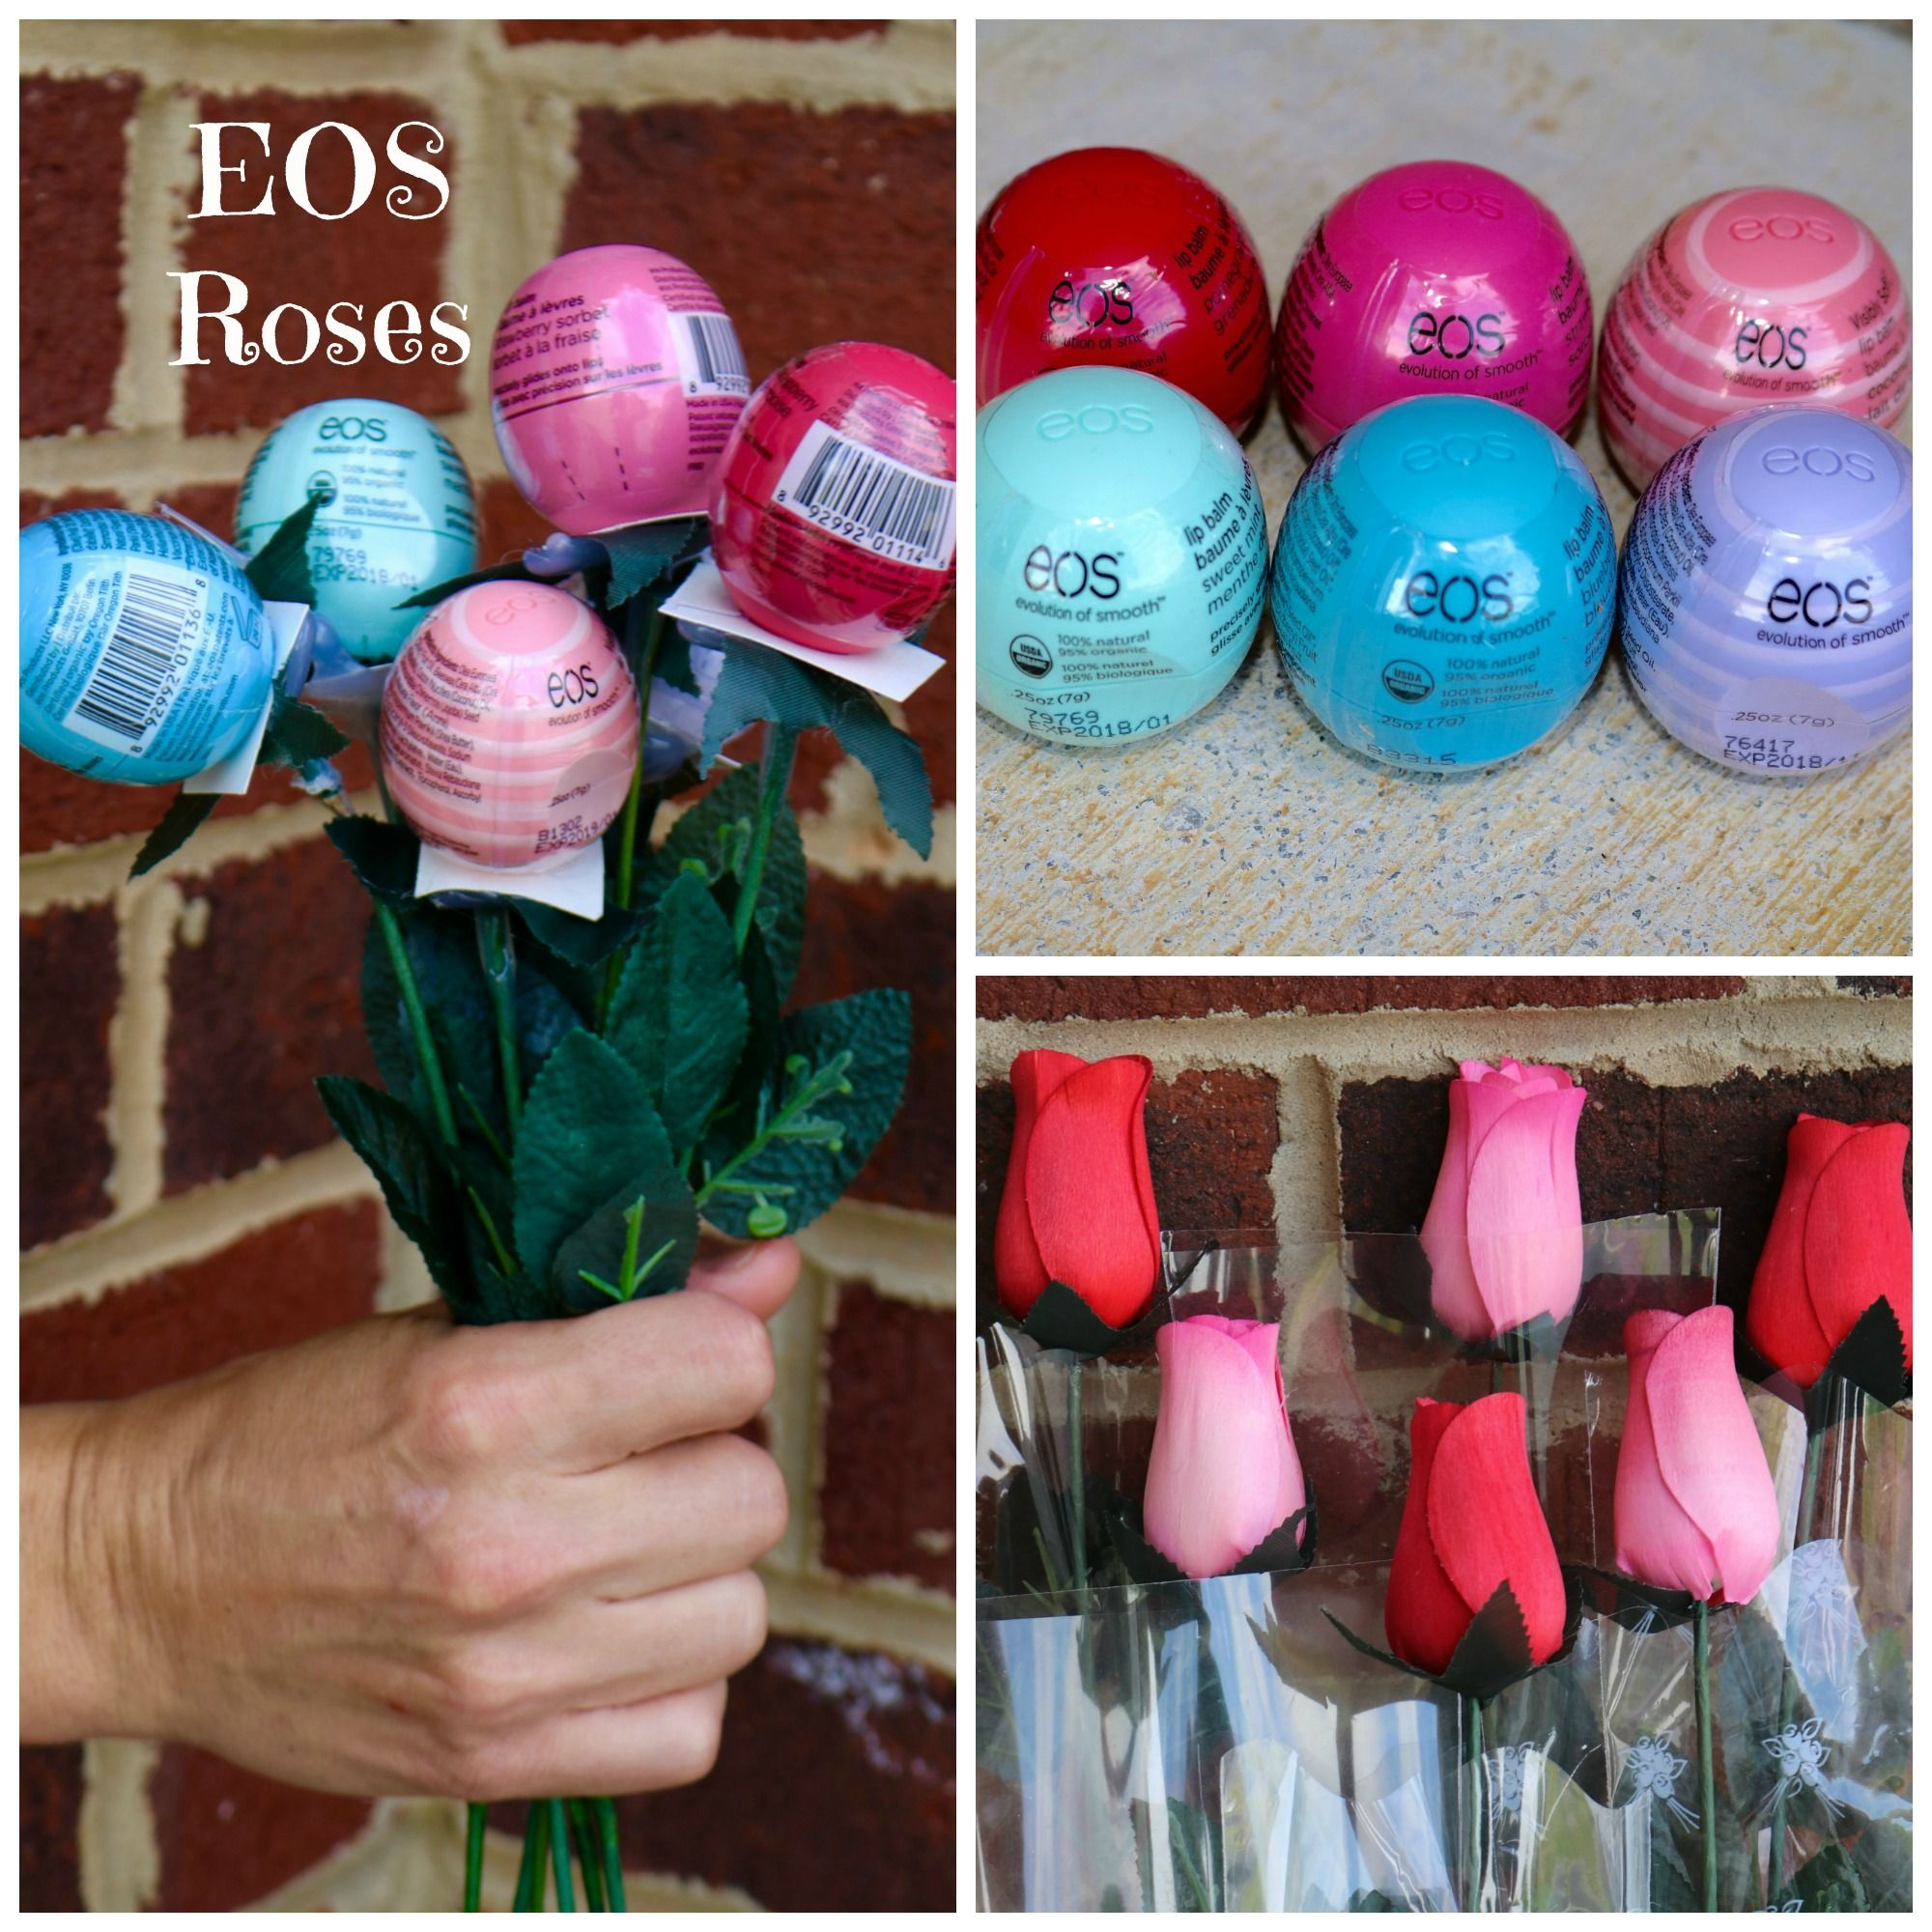 Dance Recital Gift Ideas EOS Roses Roses Wooden Roses EOS Lip